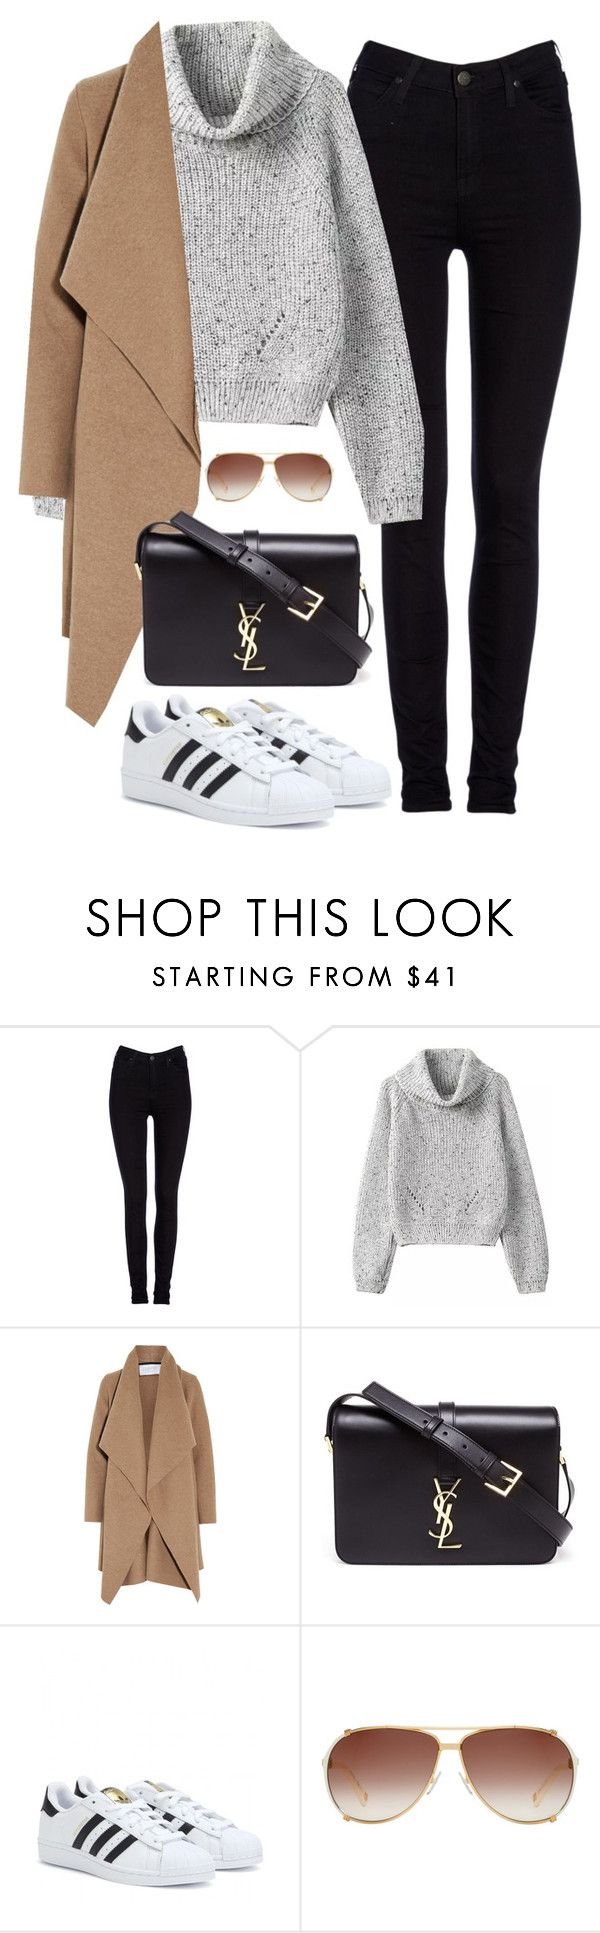 """Untitled #469"" by christyandnef on Polyvore featuring Lee, Harris Wharf London, Yves Saint Laurent, adidas, Christian Dior, women's clothing, women, female, woman and misses"